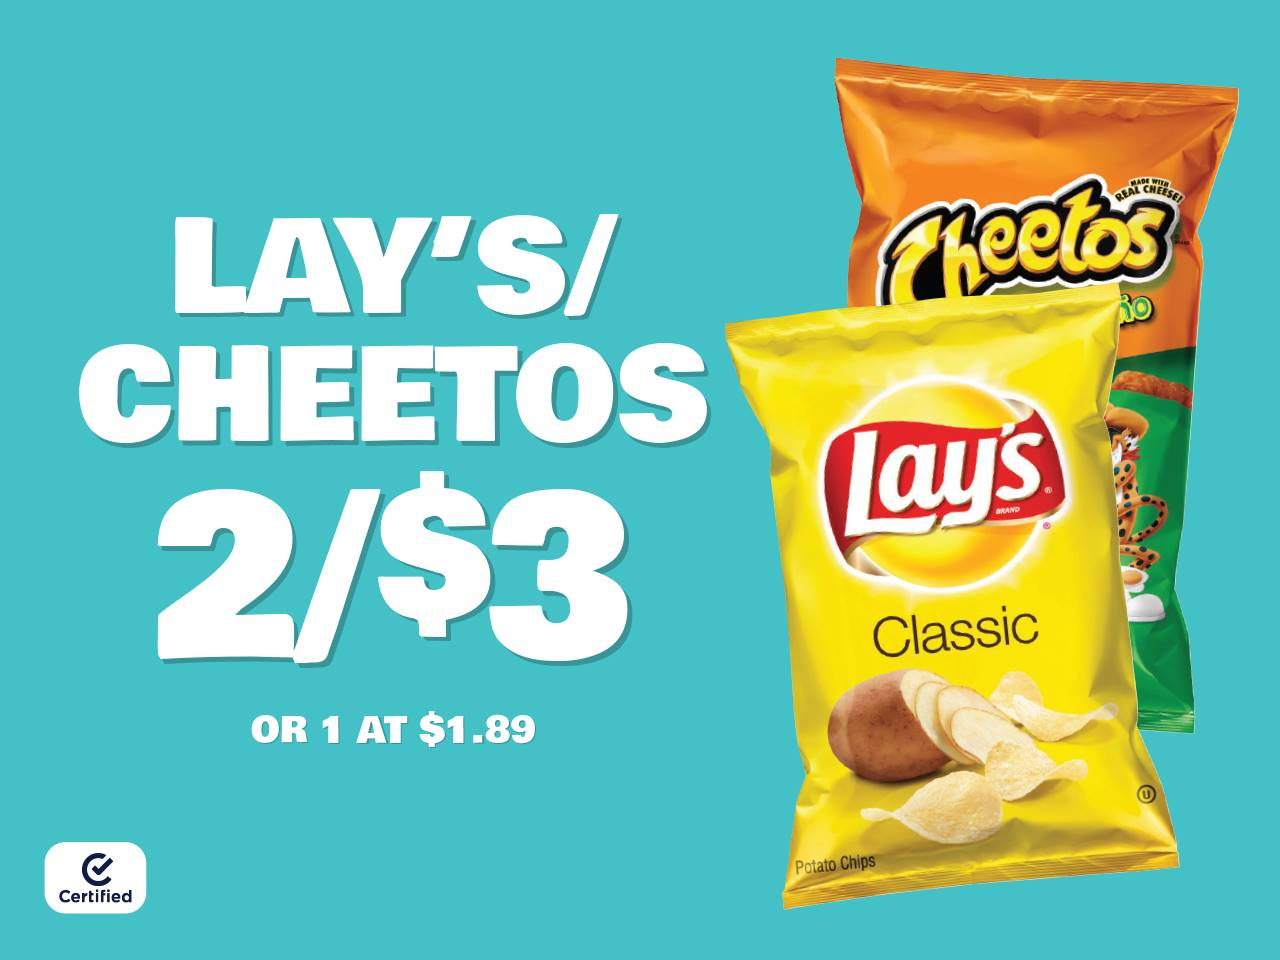 Lay's or Cheetos 2 for $3 or 1 at $1.89